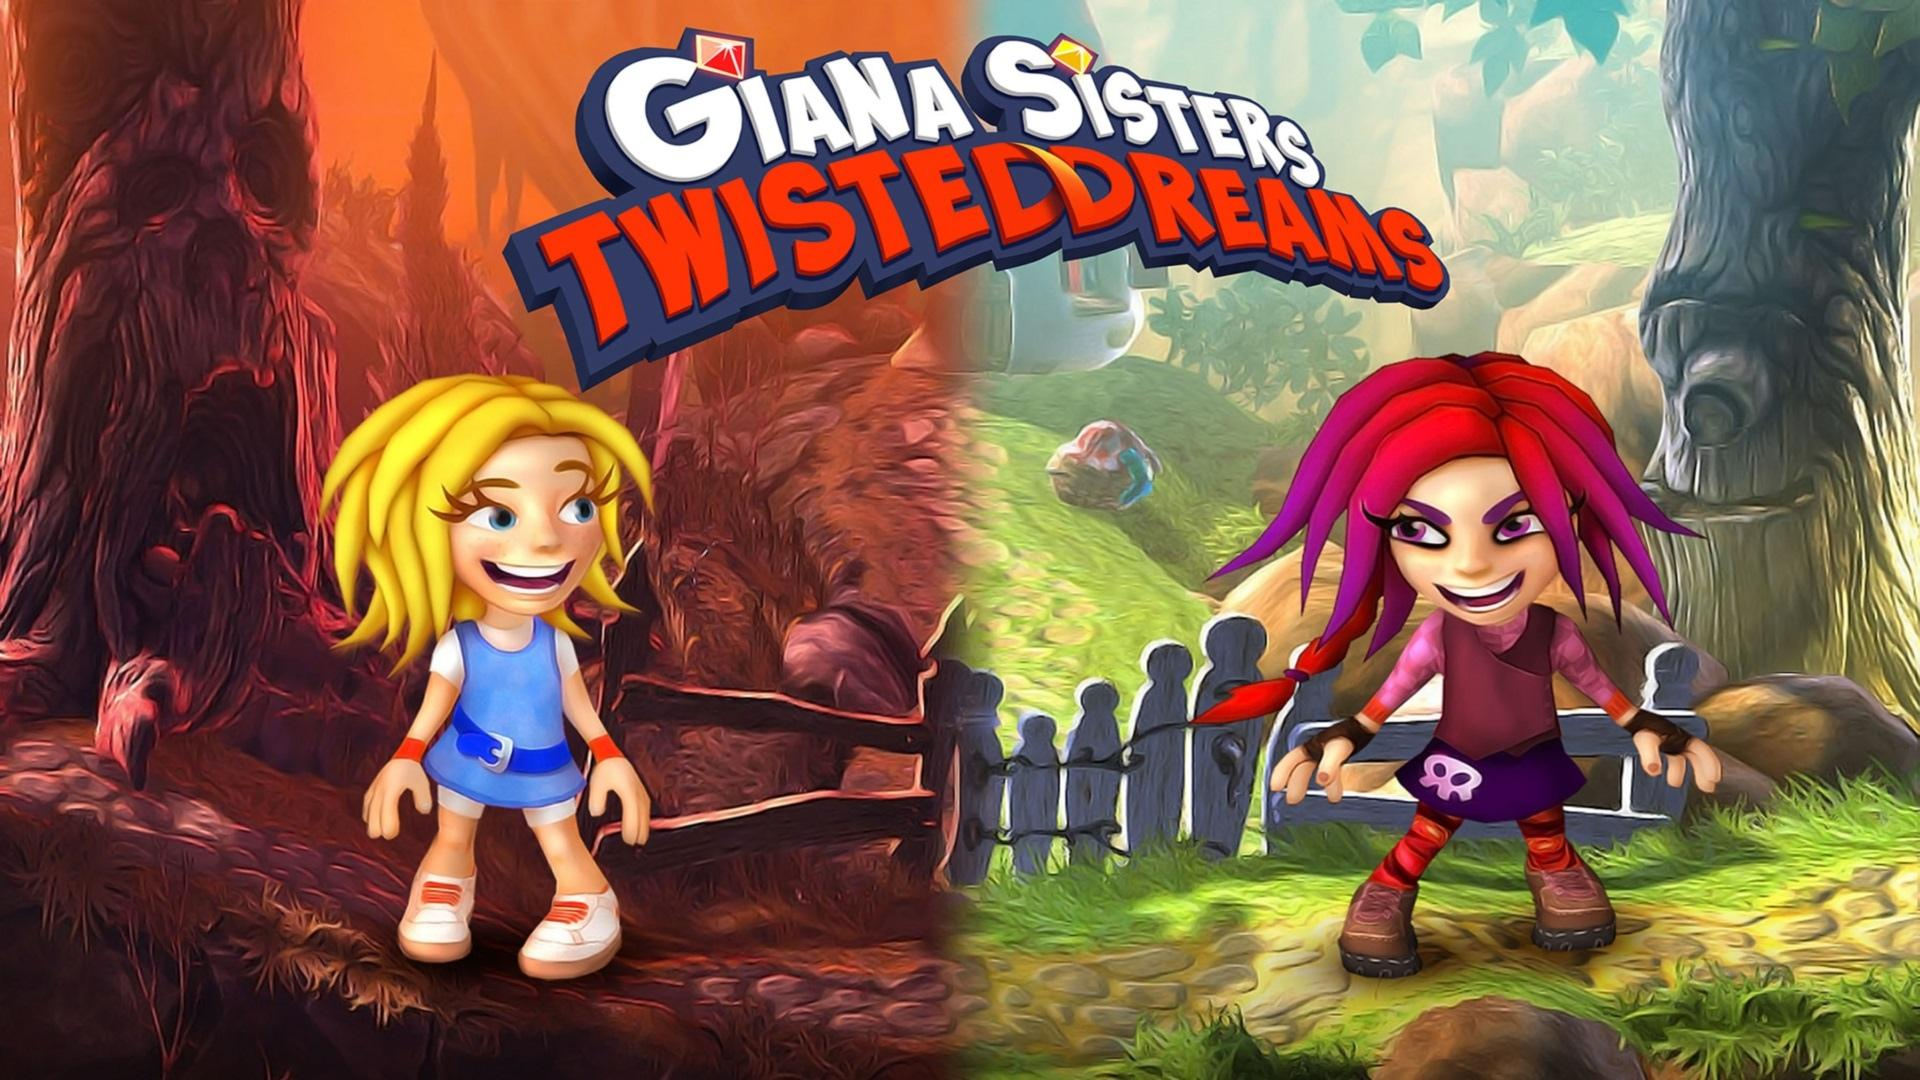 Giana Sisters Twisted Dreams wallpapers HD quality